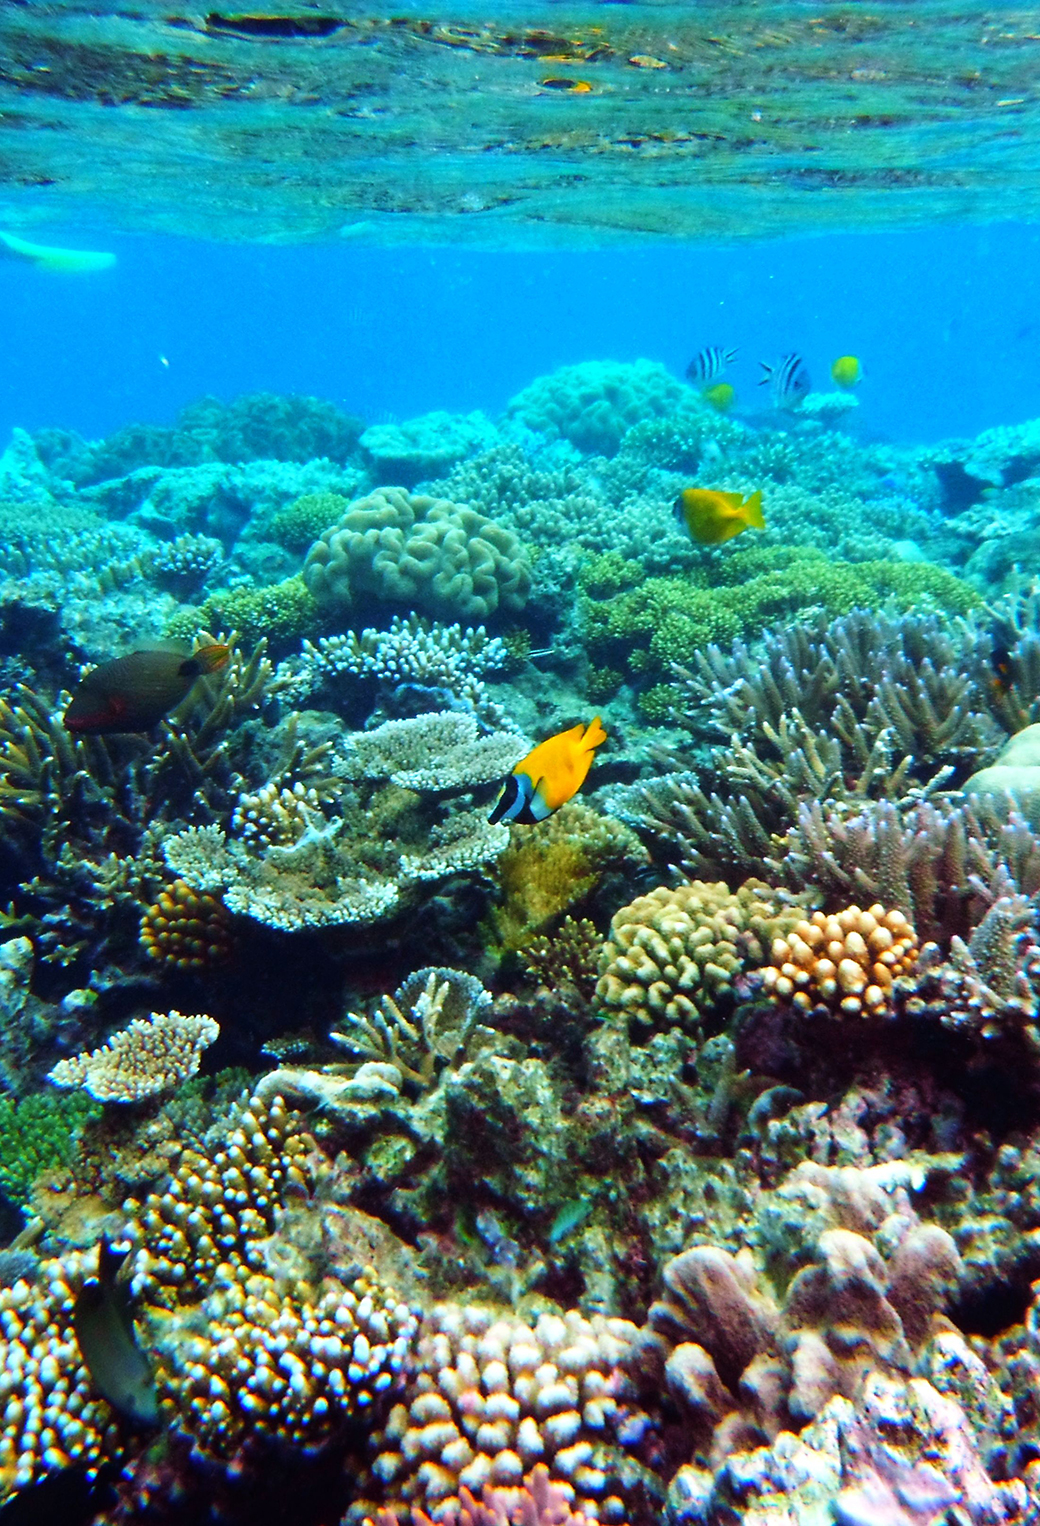 Reef Girl Wallpaper Hd Great Barrier Reef Wallpaper For Iphone X 8 7 6 Free